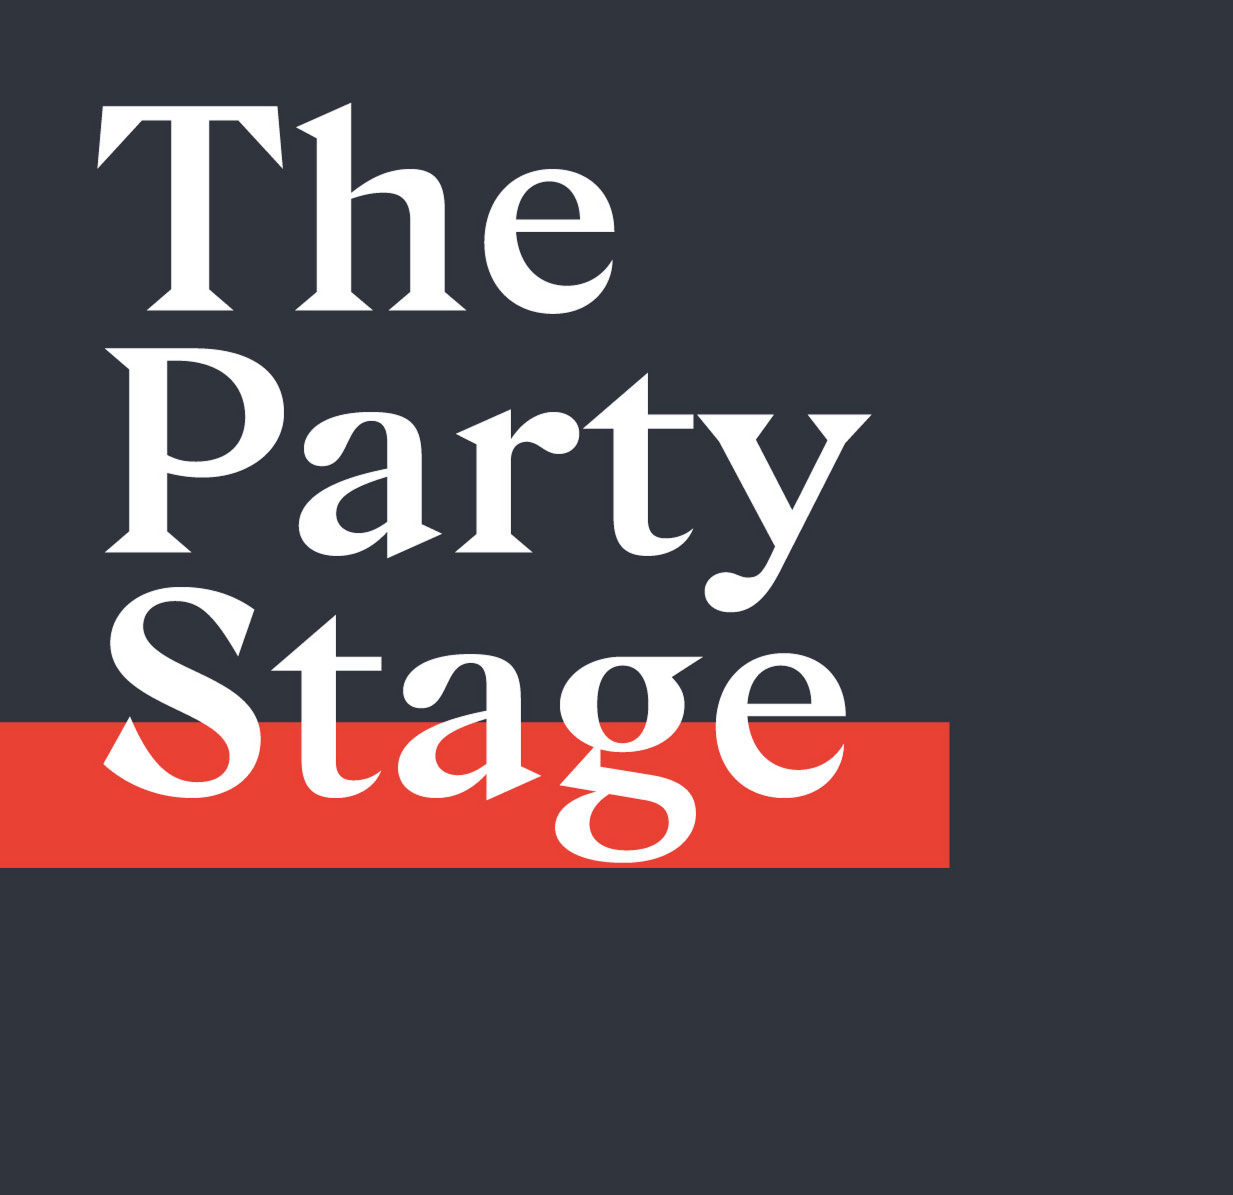 The party stage logo